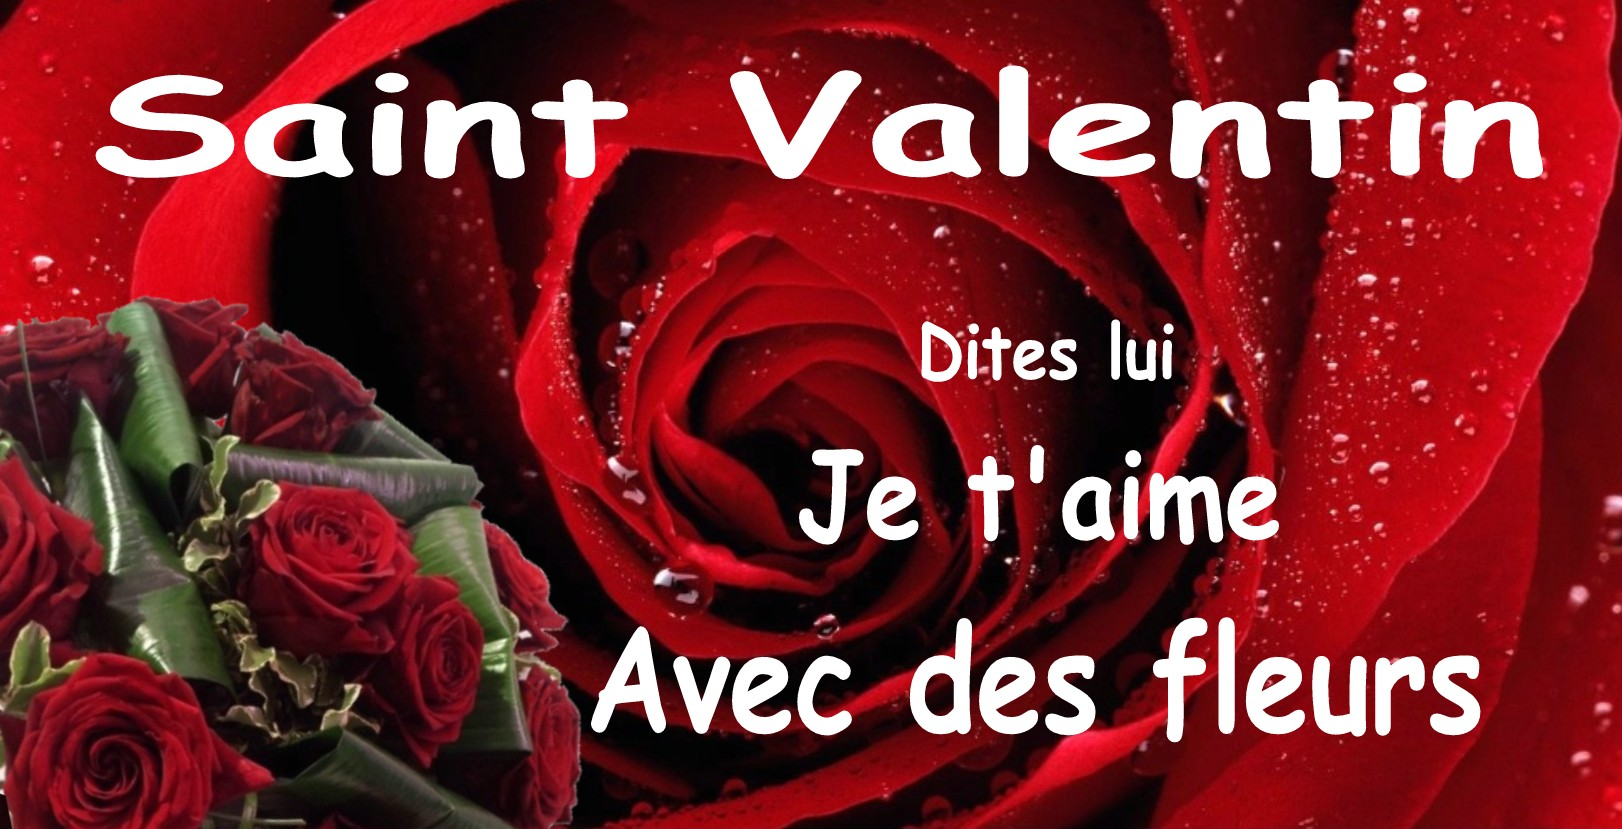 Bouquet De Fleur Pour St Valentin send valentine's day flowers - romantic bouquet - atelier de